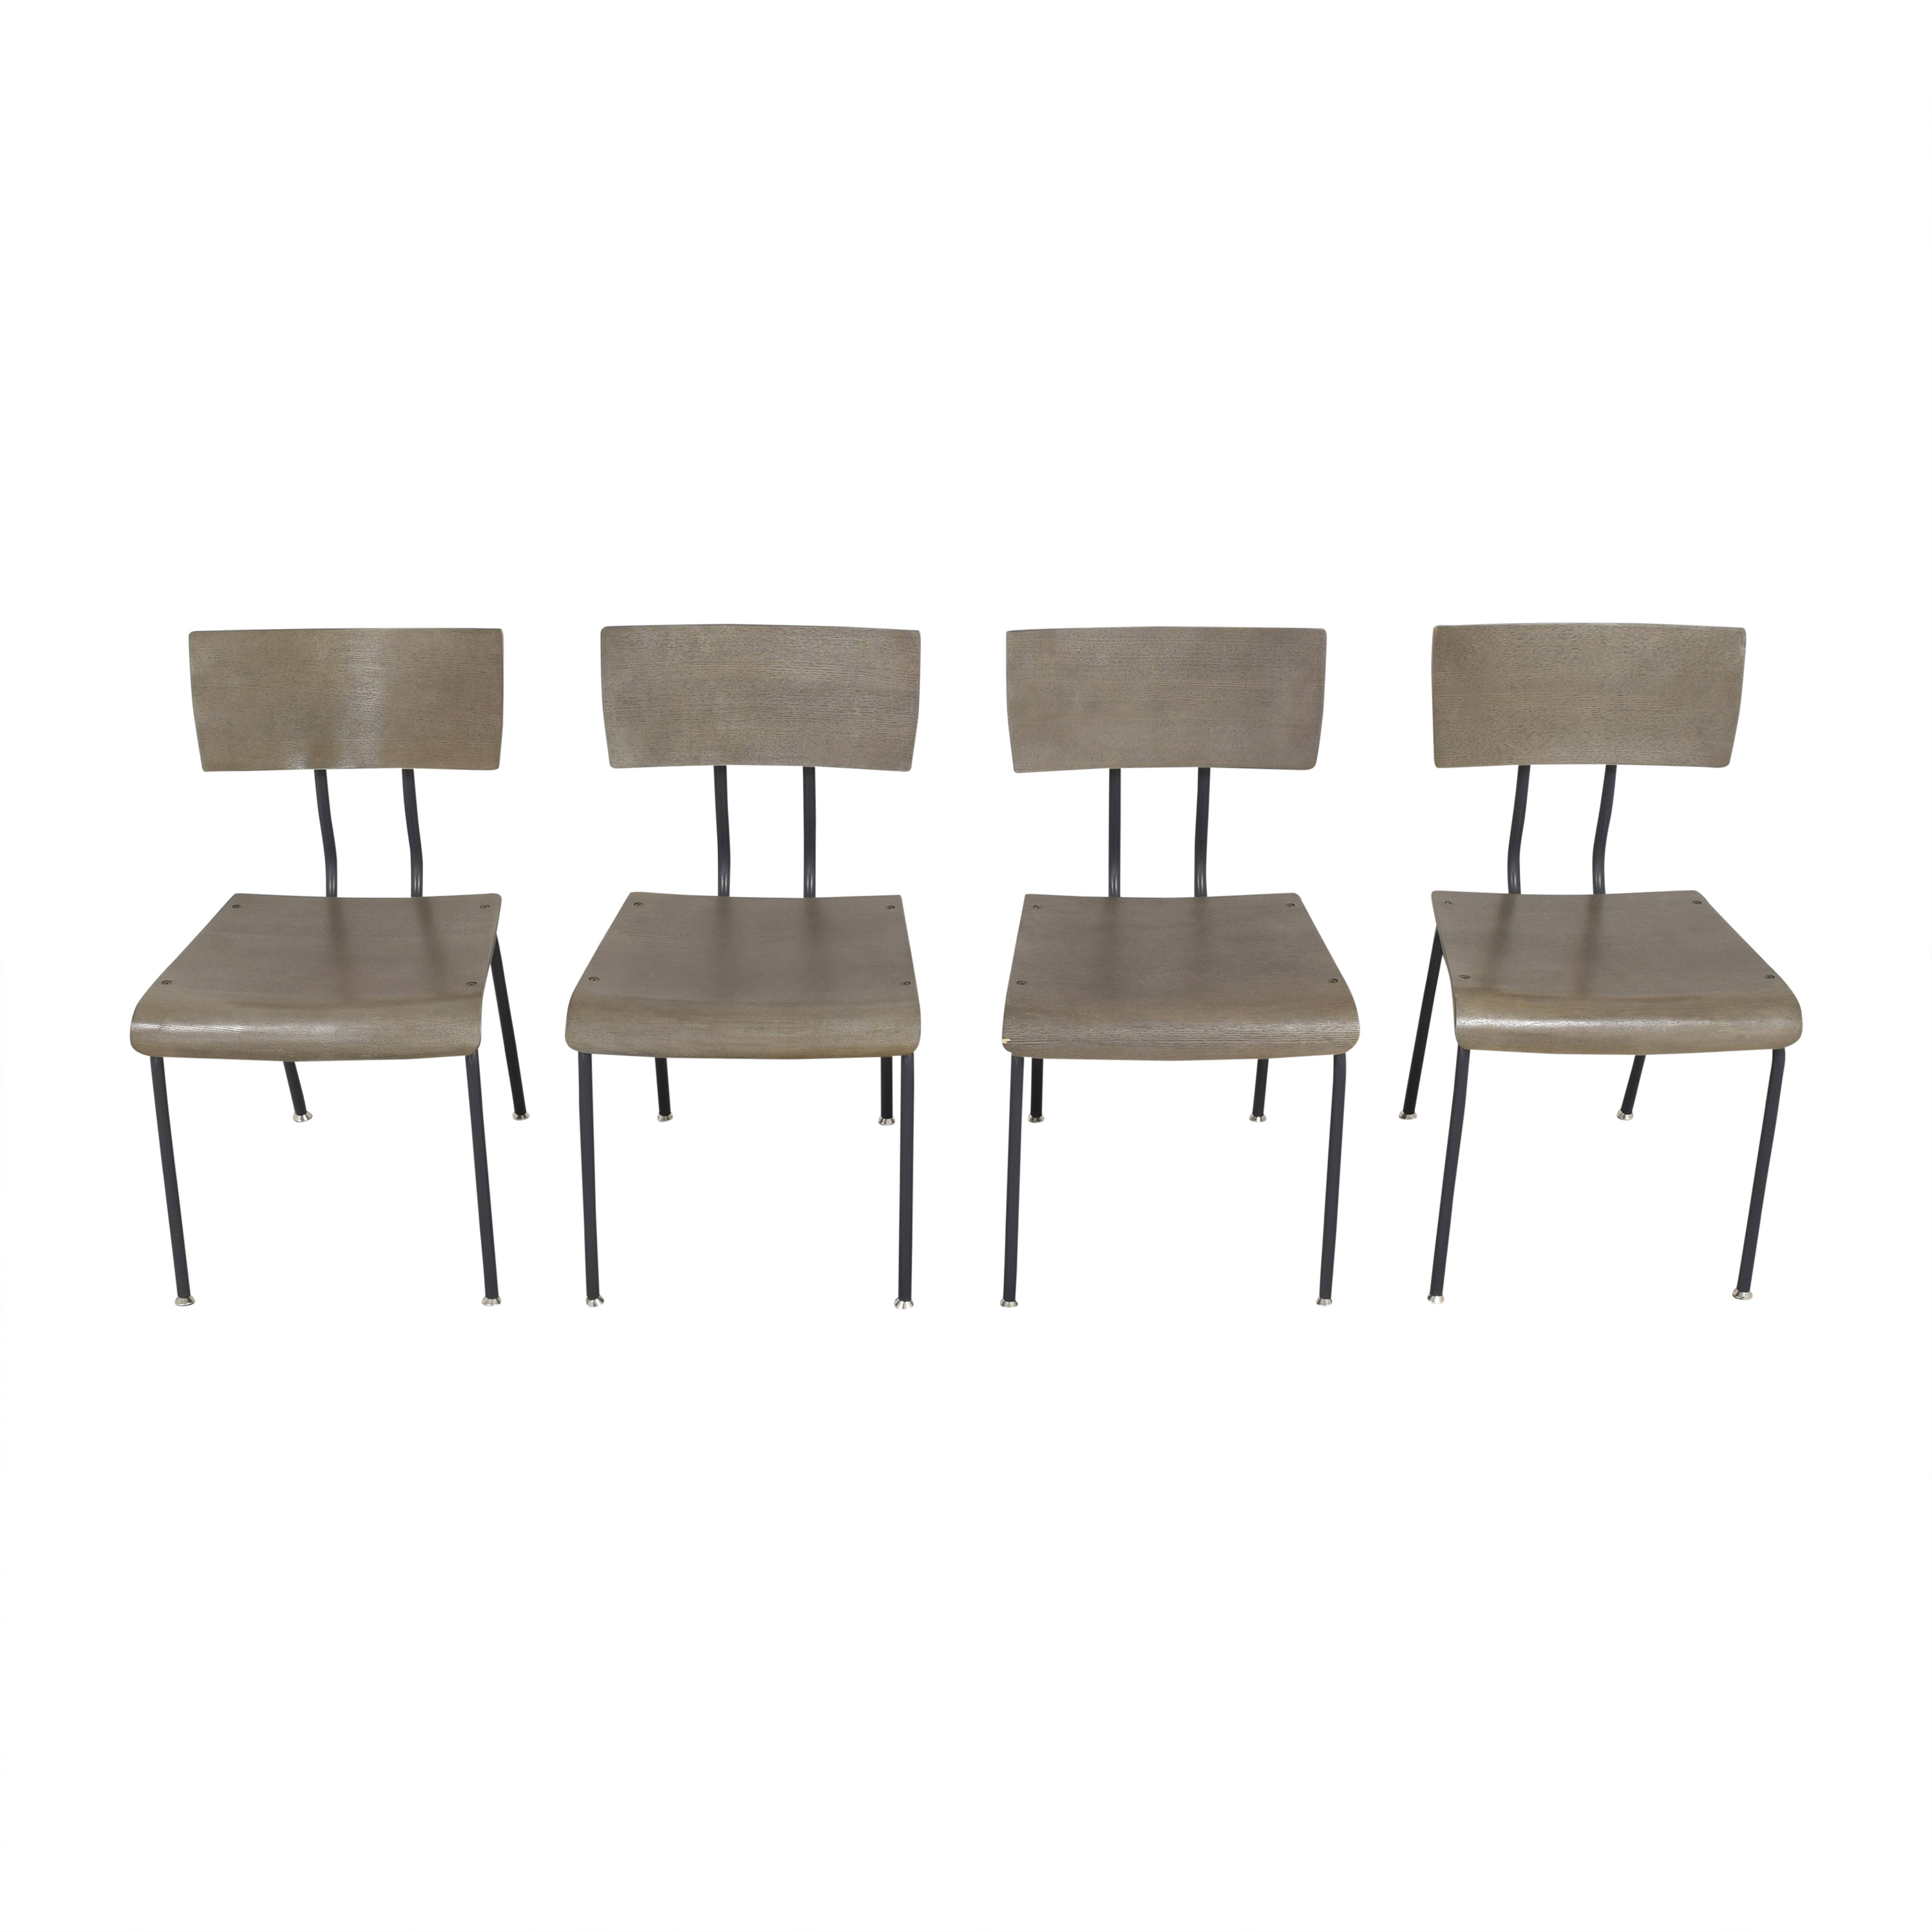 Crate & Barrel Crate & Barrel Scholar Dining Chairs used